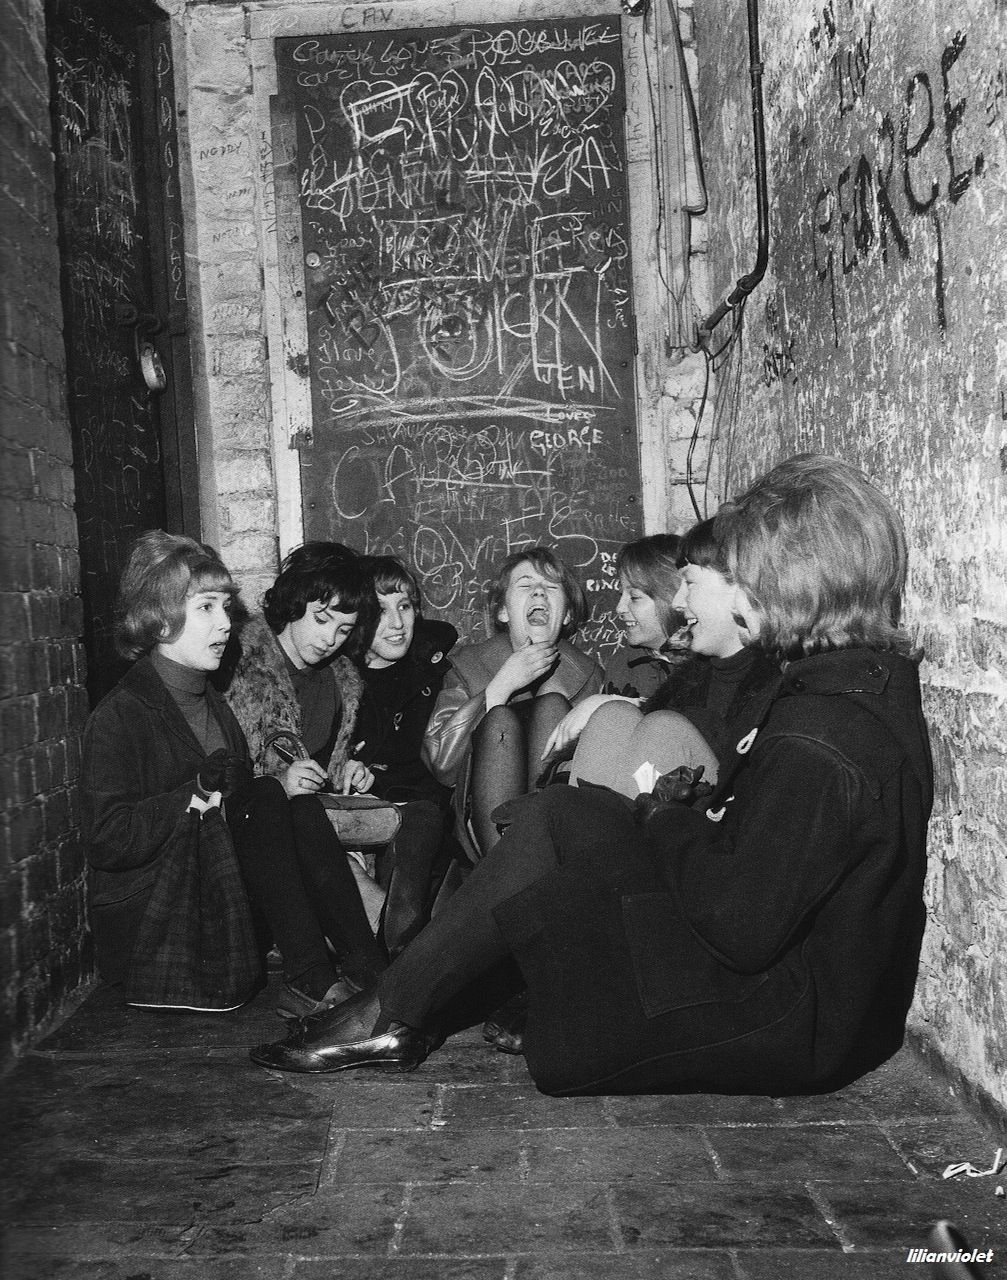 Bildresultat för The Beatles last lunchtimesession at the Cavern Club in February 1963